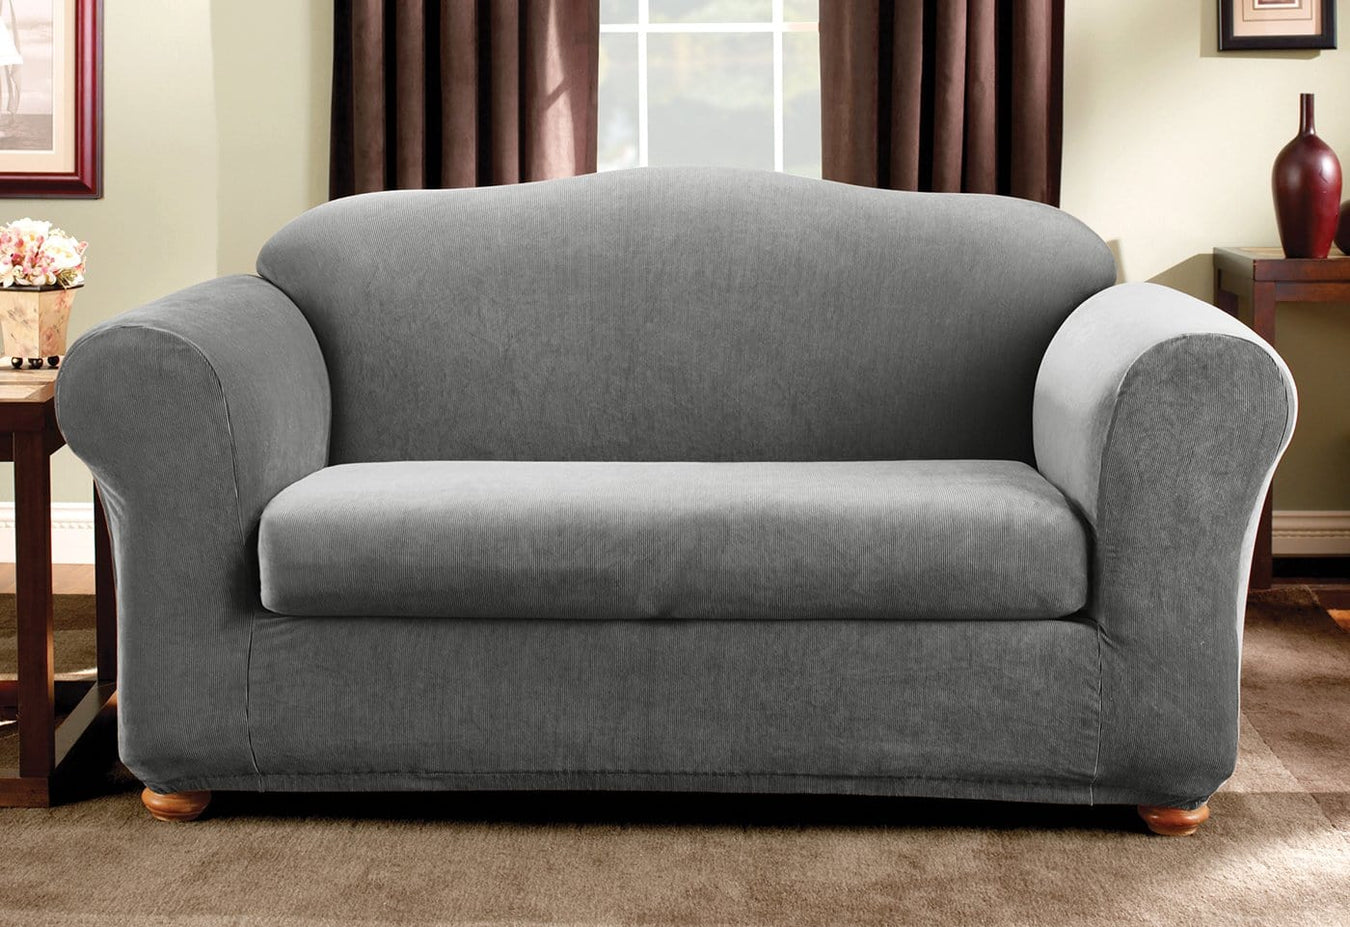 Astounding Stretch Madison Stripe Two Piece Loveseat Slipcover Surefit Ocoug Best Dining Table And Chair Ideas Images Ocougorg